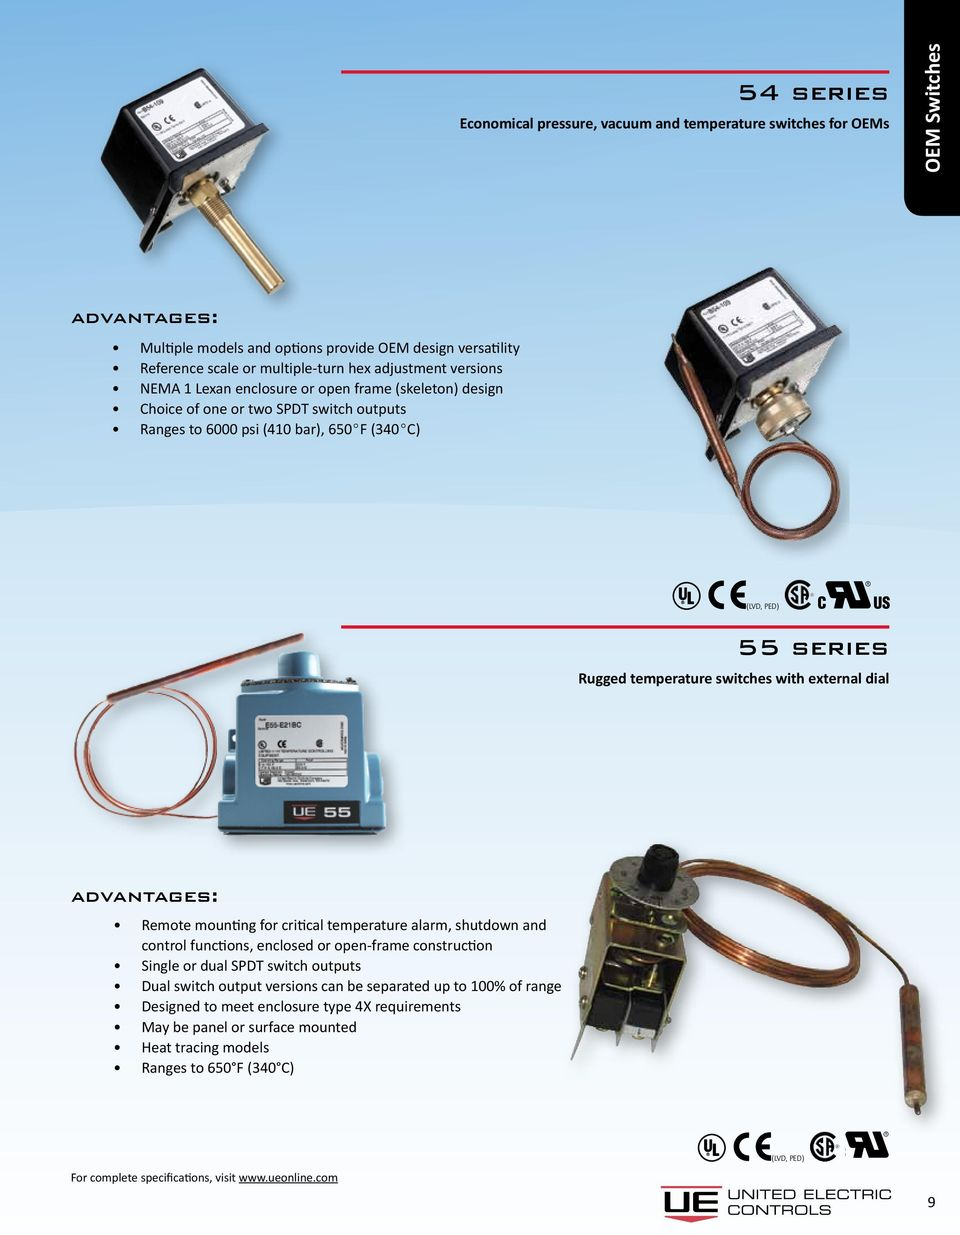 temperature switches with external dial Remote mounting for critical temperature alarm, shutdown and control functions, enclosed or open-frame construction Single or dual SPDT switch